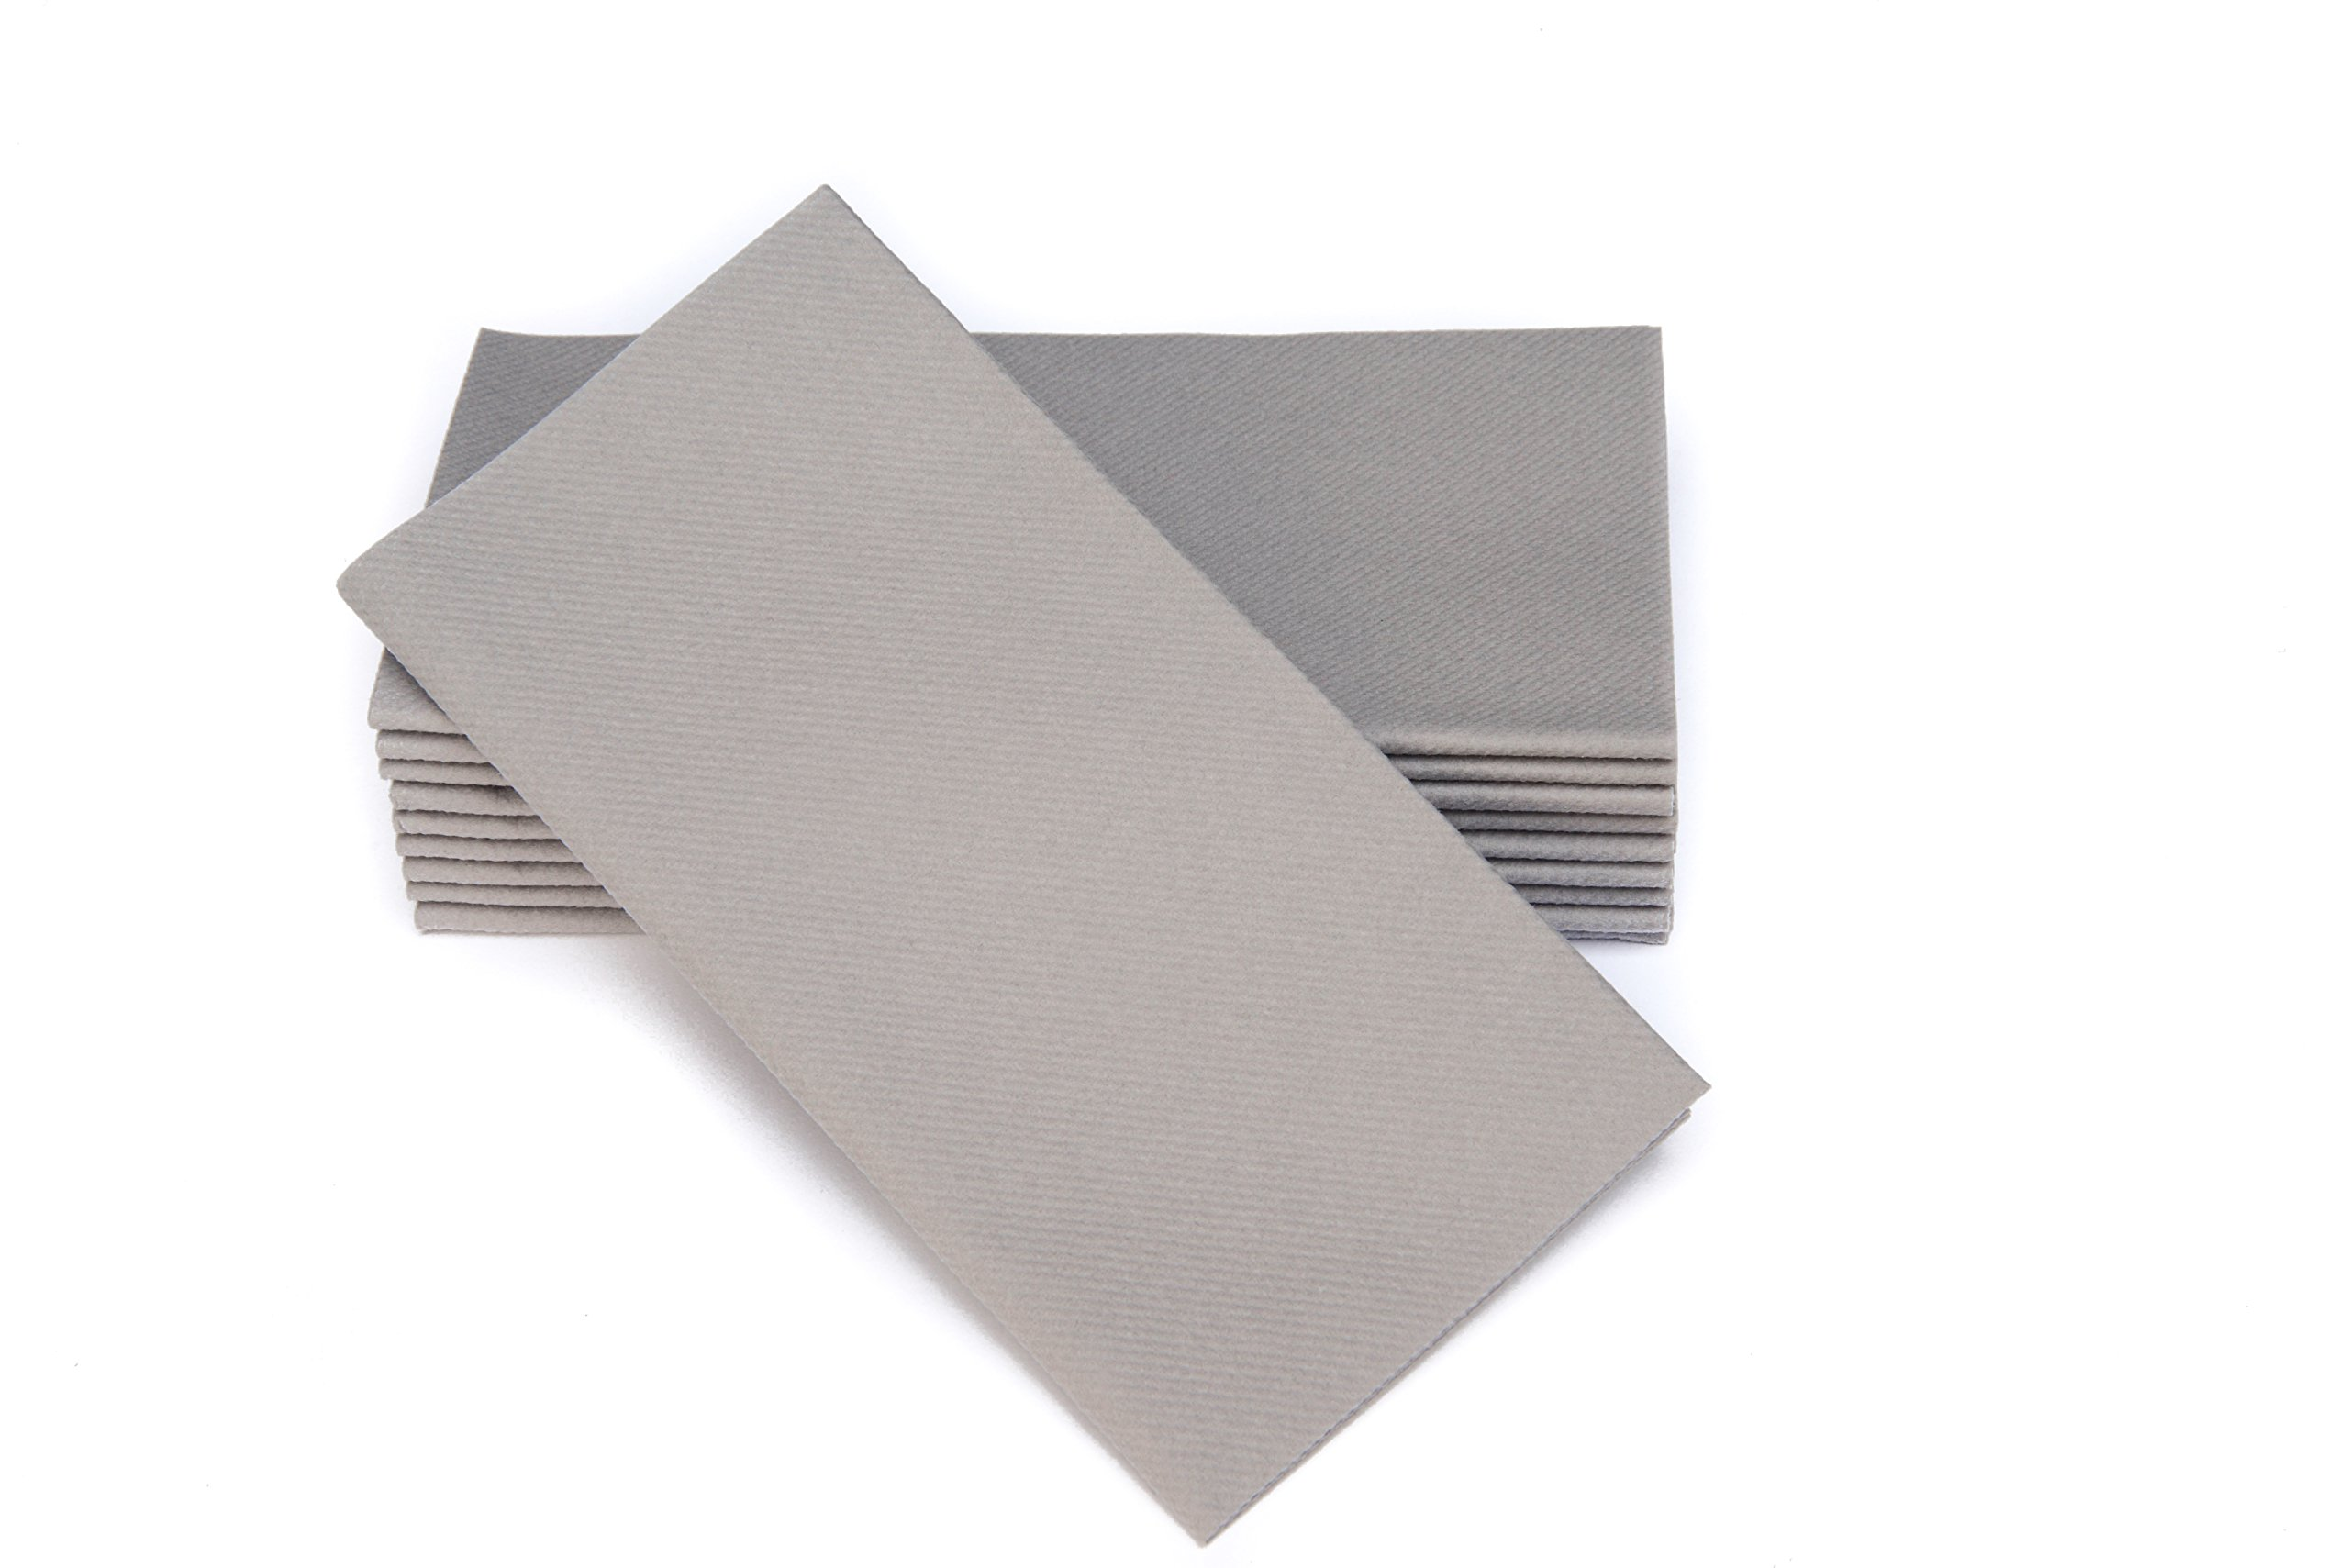 """Simulinen Colored Napkins - Decorative Cloth Like & Disposable, Dinner Napkins - Rich Gray - Soft, Absorbent & Durable - 16""""x16"""" - Great for Any Occasion! - Box of 50"""